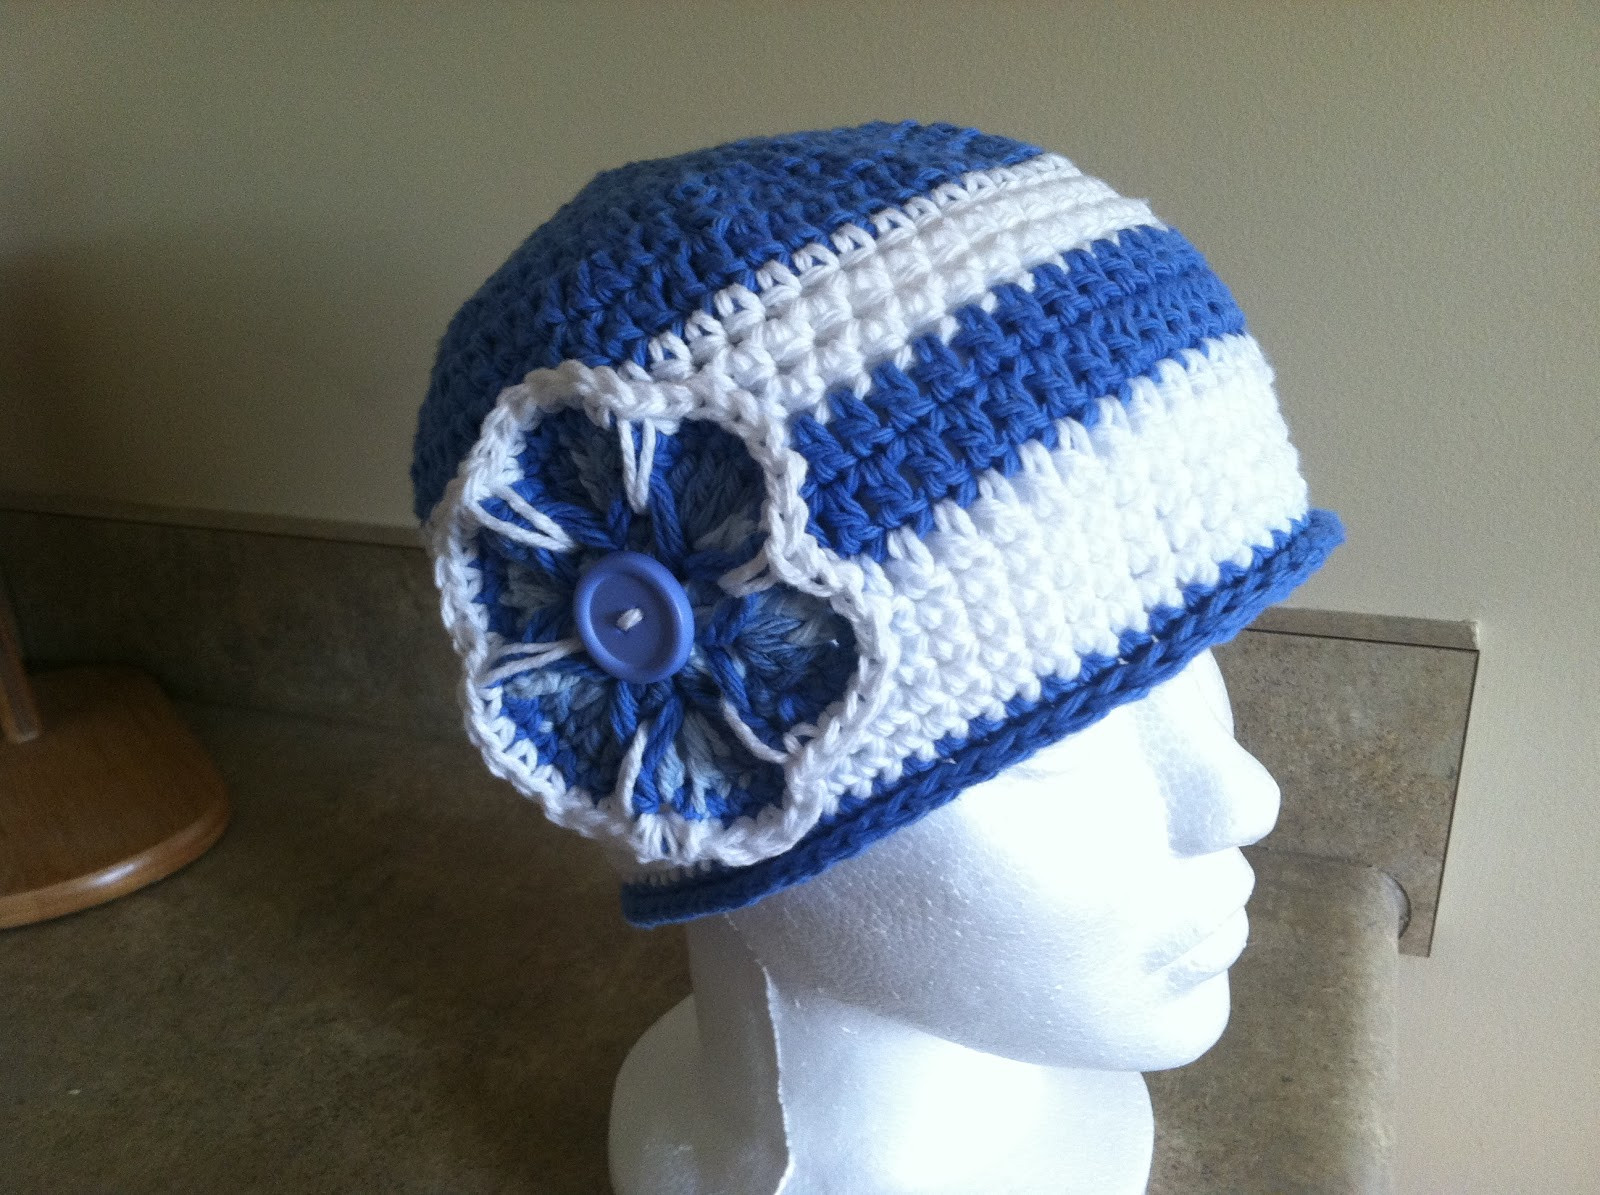 Free Crochet Chemo Hat Patterns Elegant Crochet for Cancer Chemo Hat & Flower Patterns Of Awesome 43 Ideas Free Crochet Chemo Hat Patterns